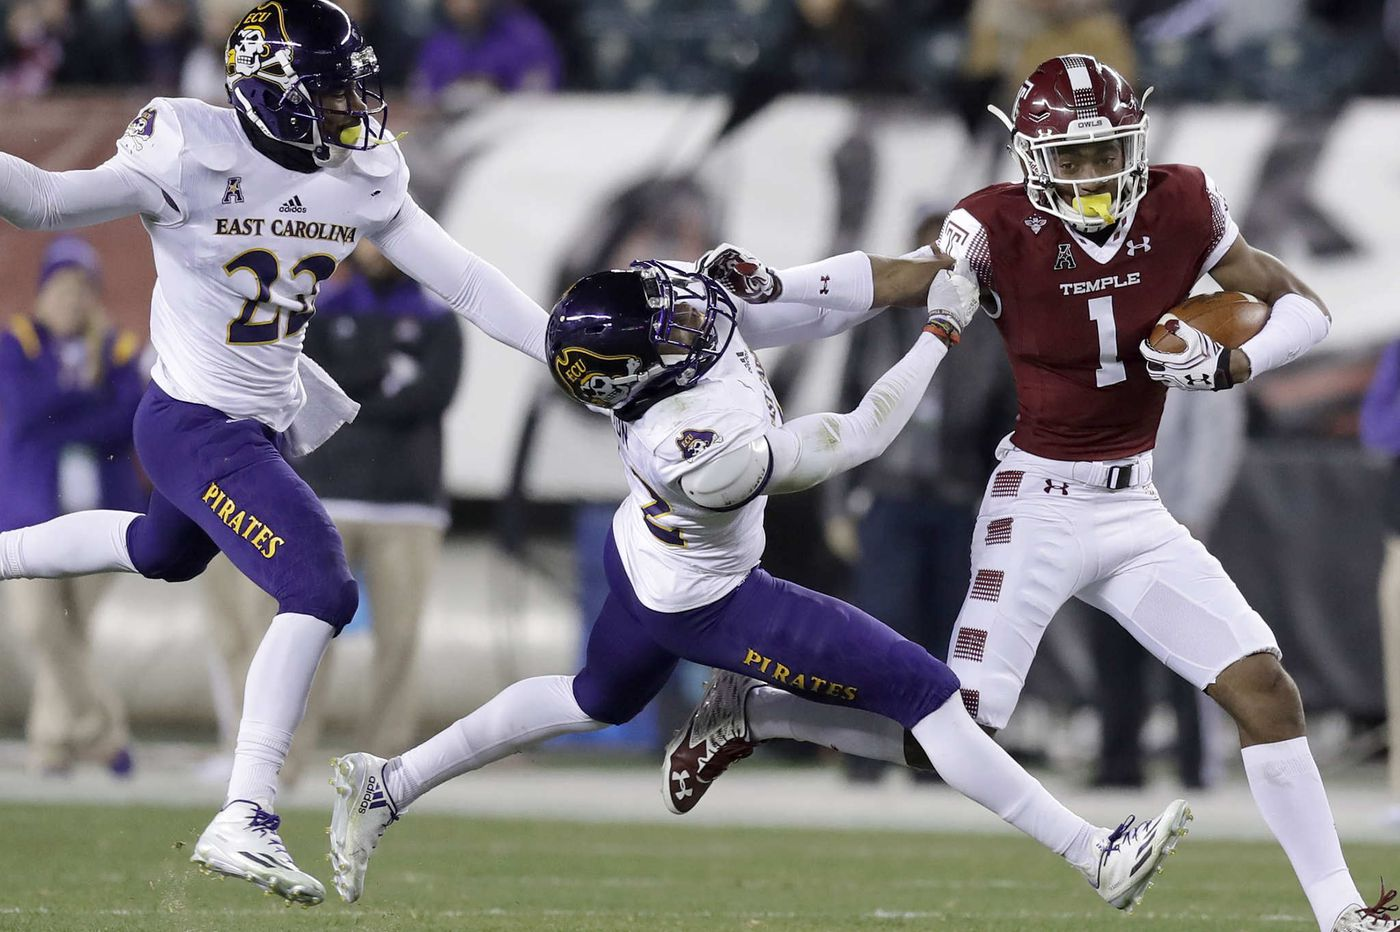 Former Temple wide receiver Ventell Bryant earns a contract with the Cincinnati Bengals after impressive tryout